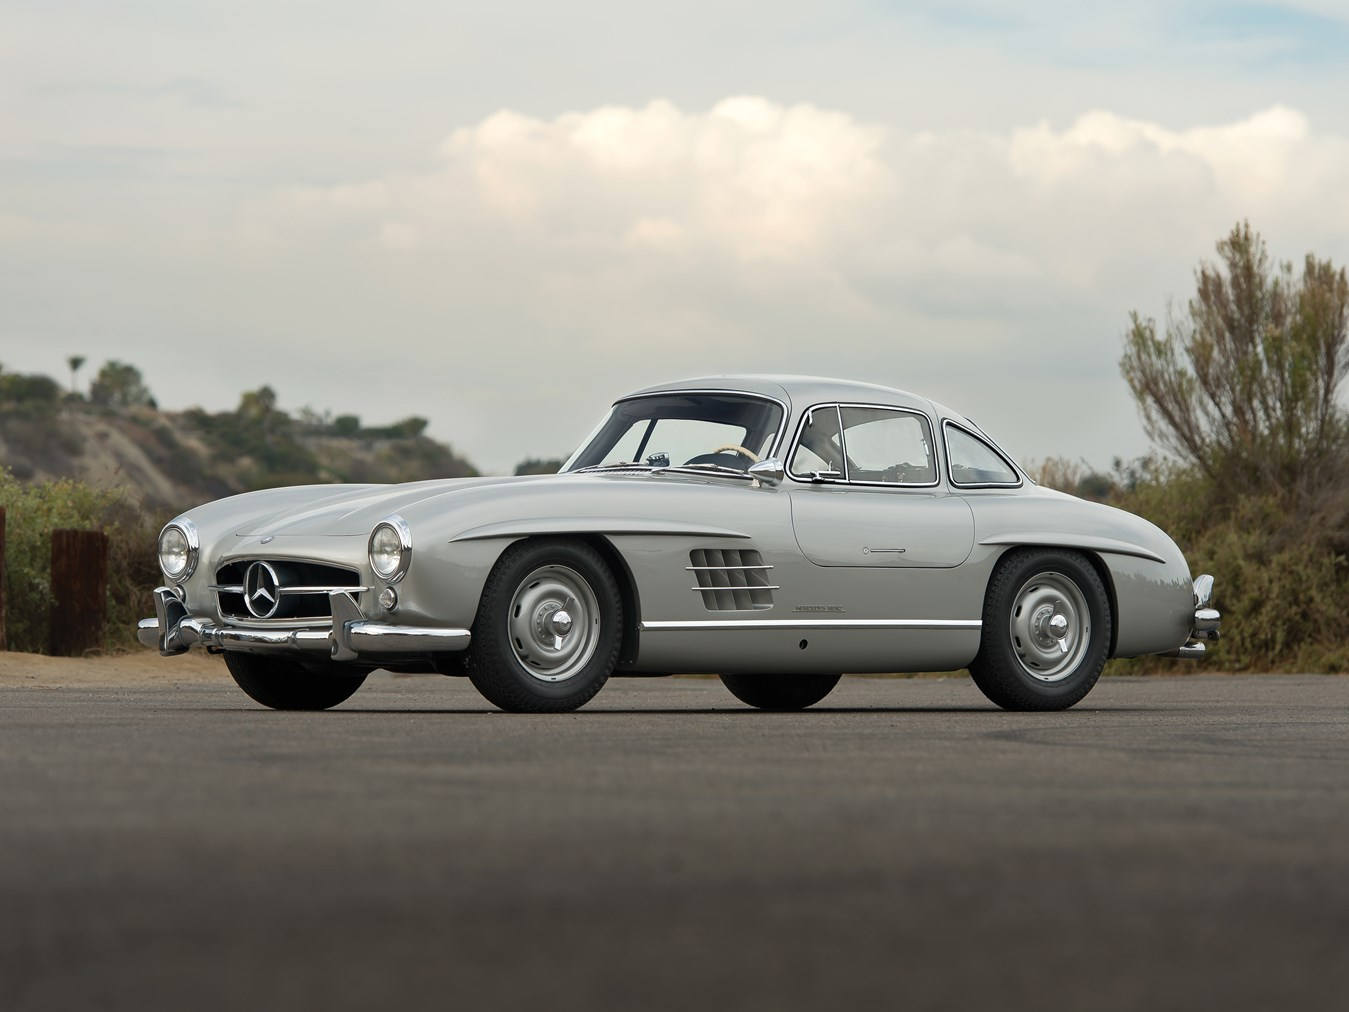 1955 Mercedes-Benz 300 SL Gullwing front 3/4